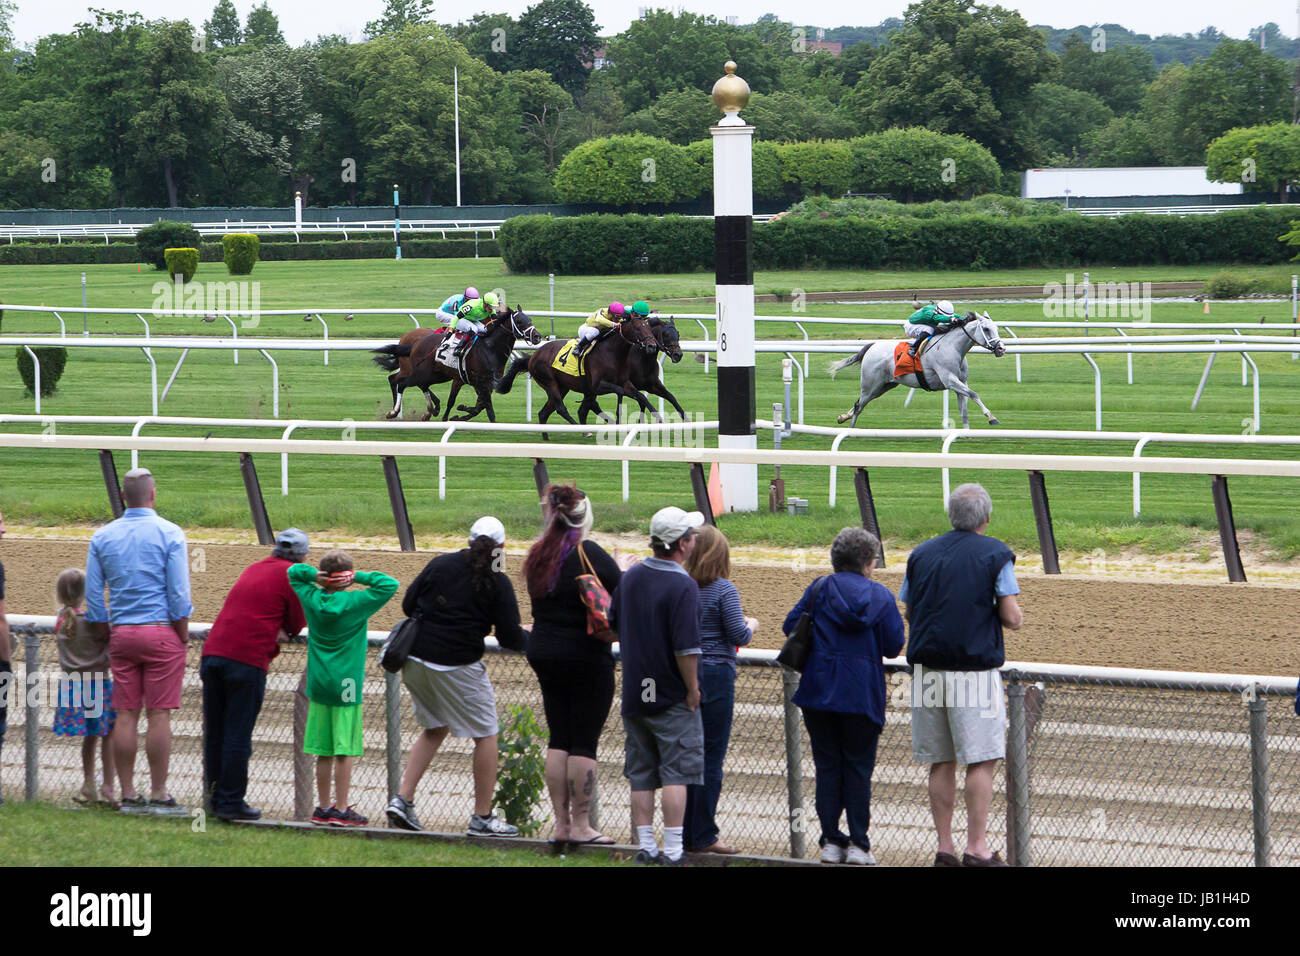 Day At The Track >> A Day At The Races Belmont Park Racetrack Elmont New York